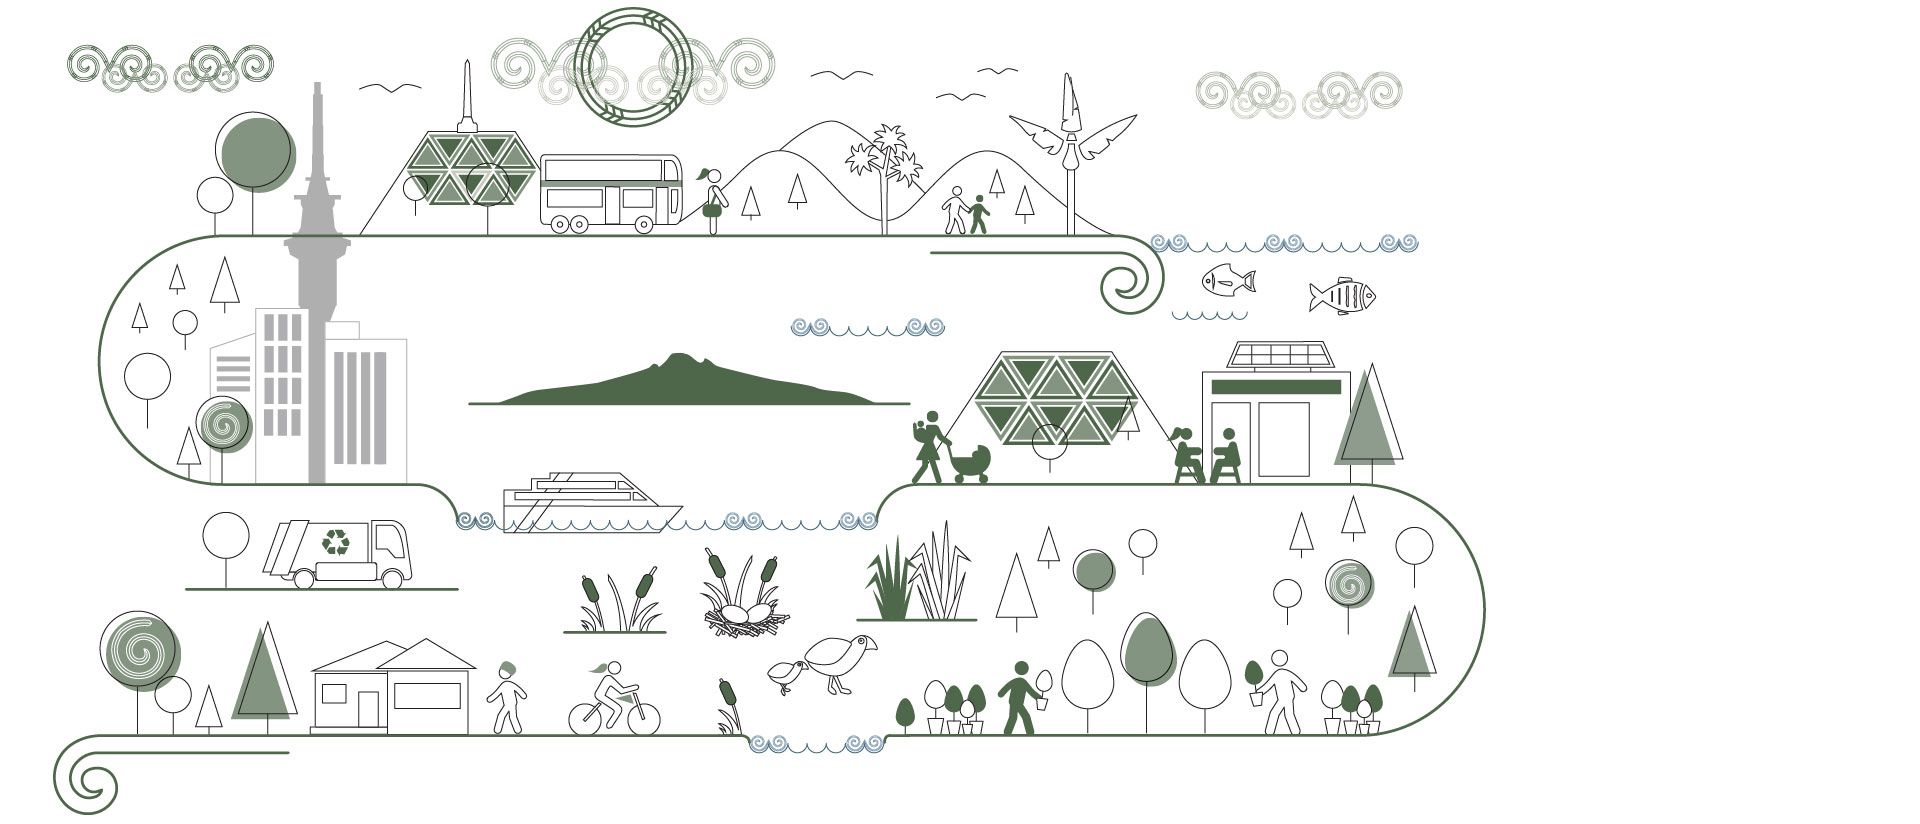 Conceptual graphic of Auckland landmarks such as the sky tower, rangitoto island, one tree hill,  the different people in Auckland and the environmental features of Auckland including native birds, trees, volcanic cones, fish and open space